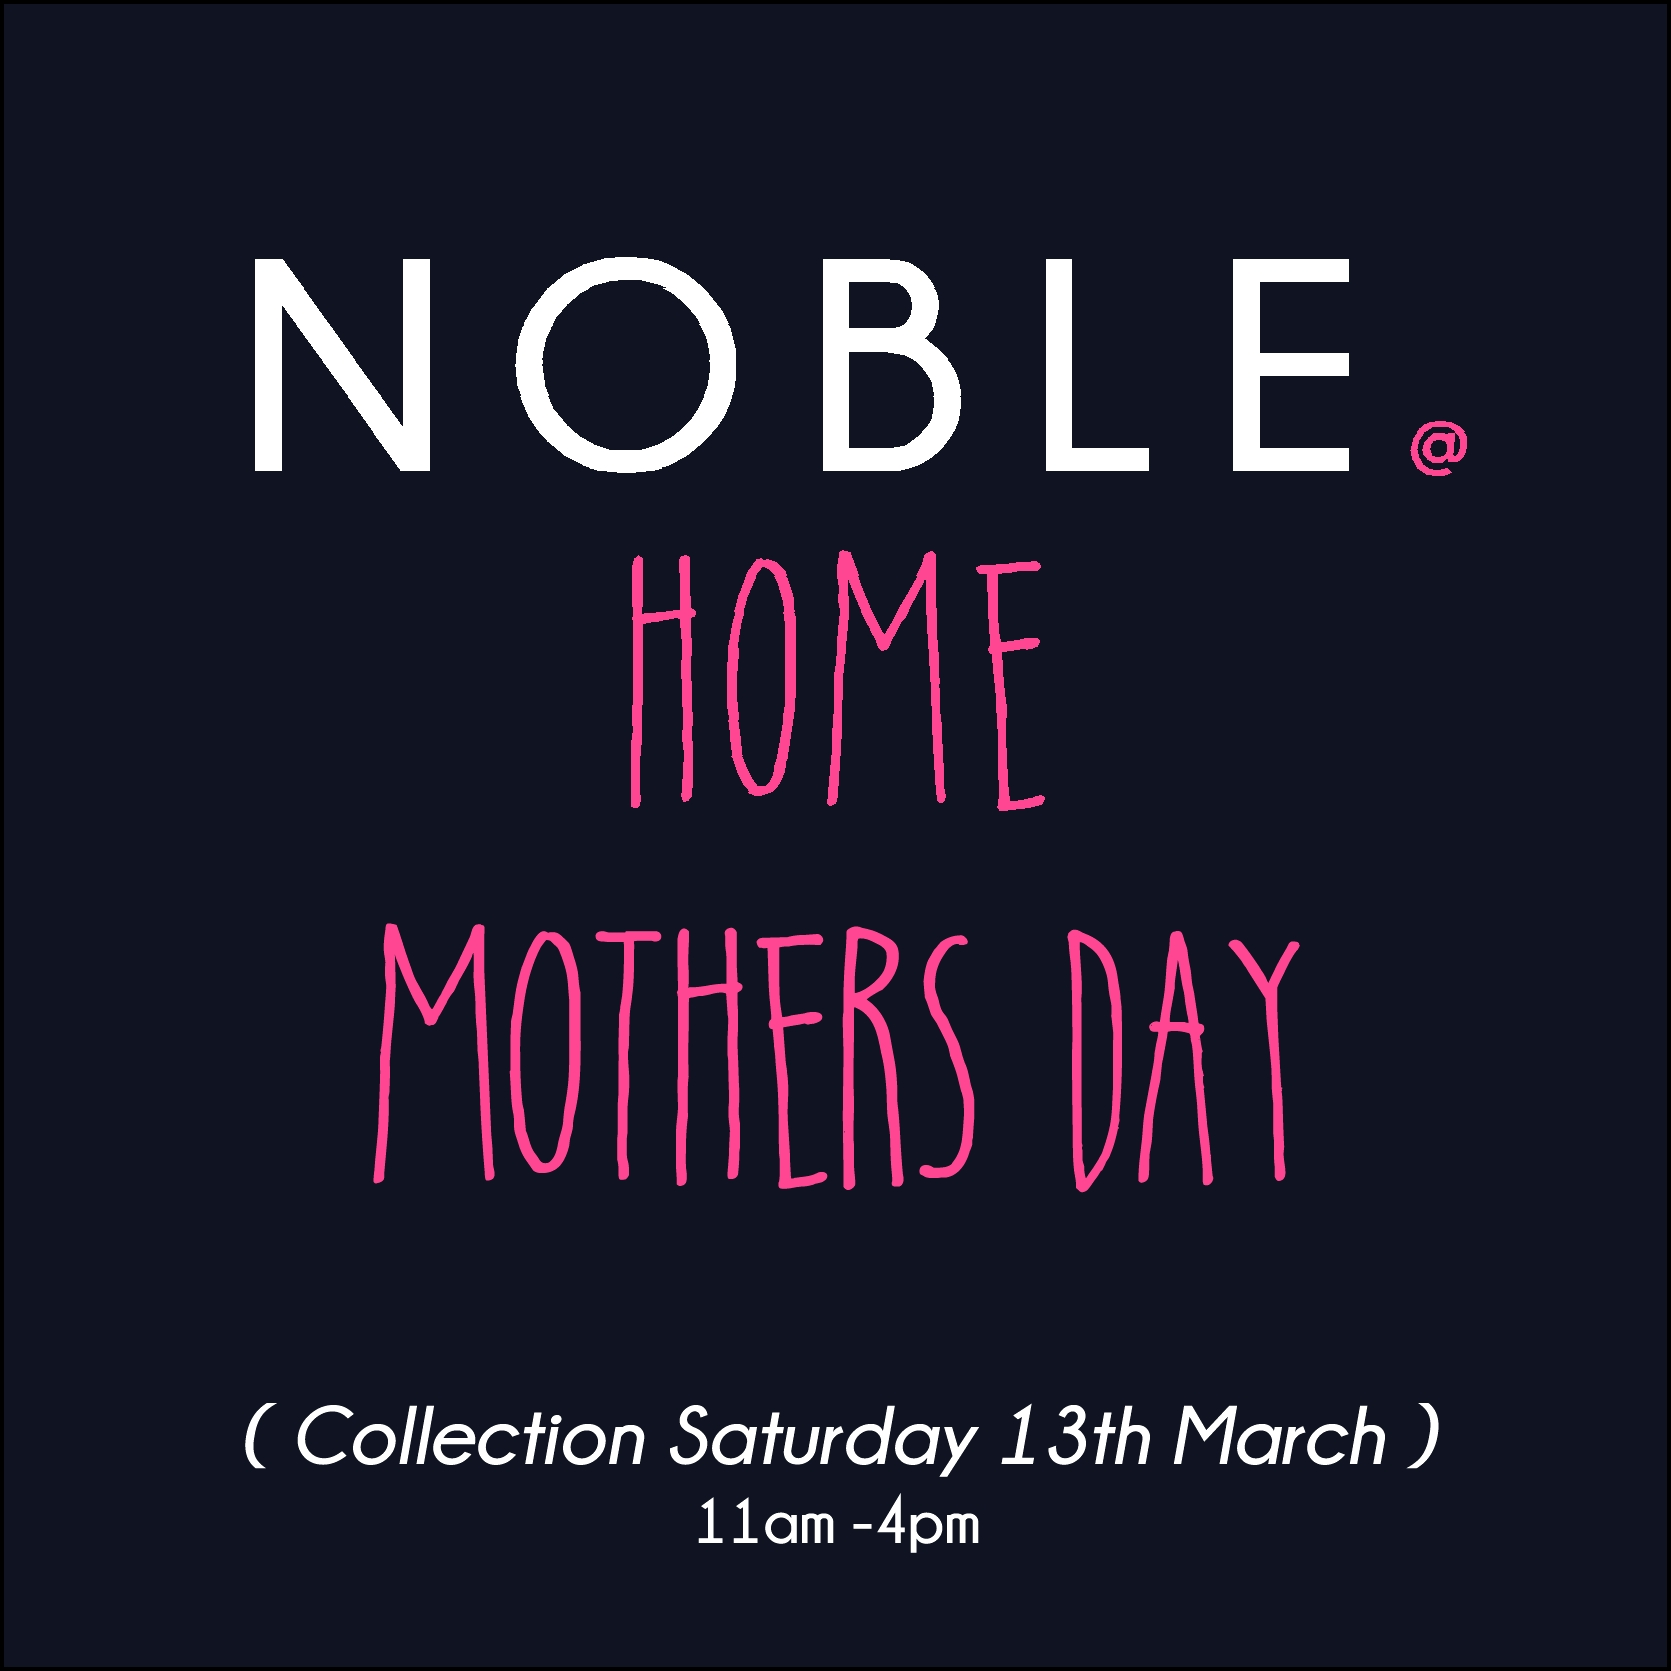 NOBLE@HOME MOTHERS DAY